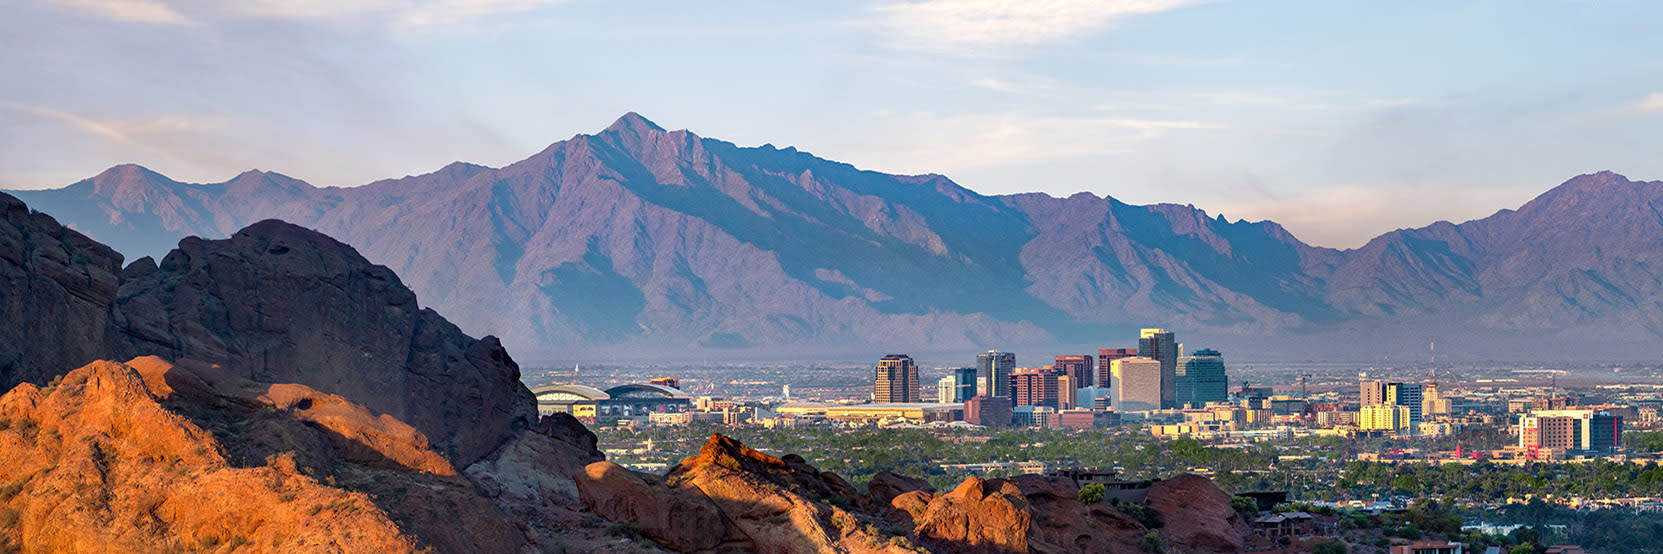 D2 camelback downtown header